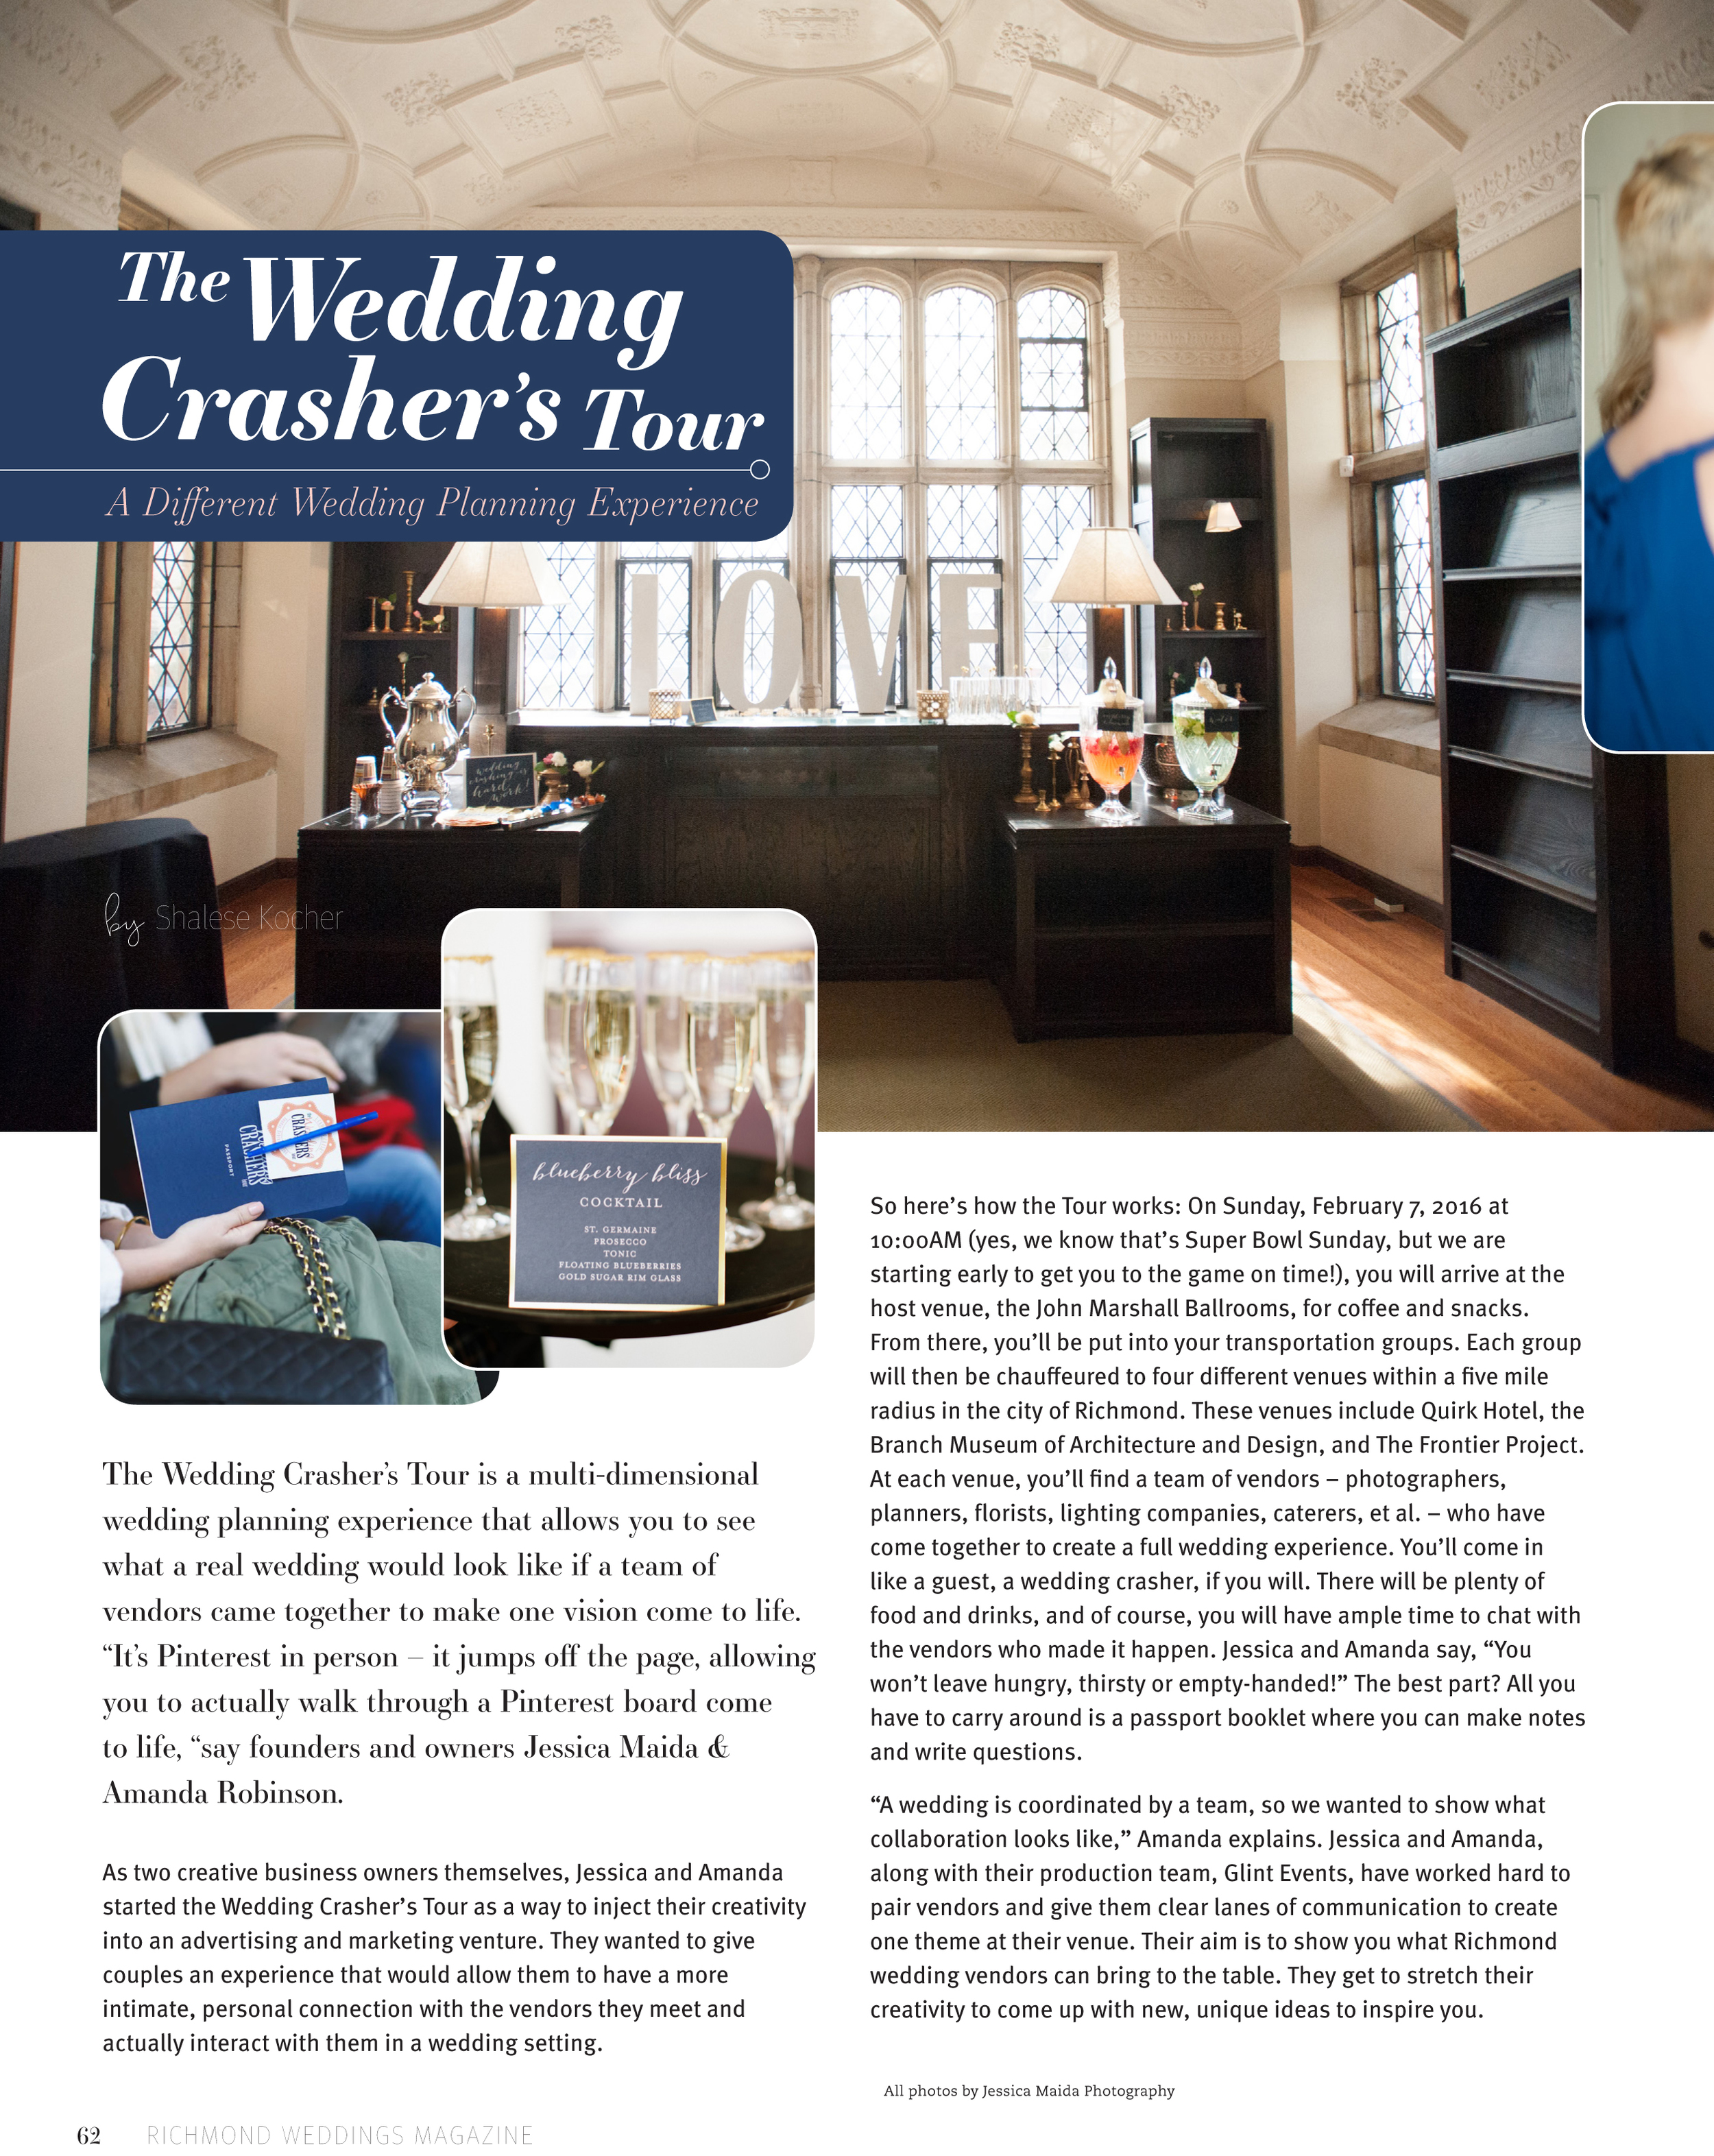 As seen in this Winter's issue of Richmond Weddings Magazine